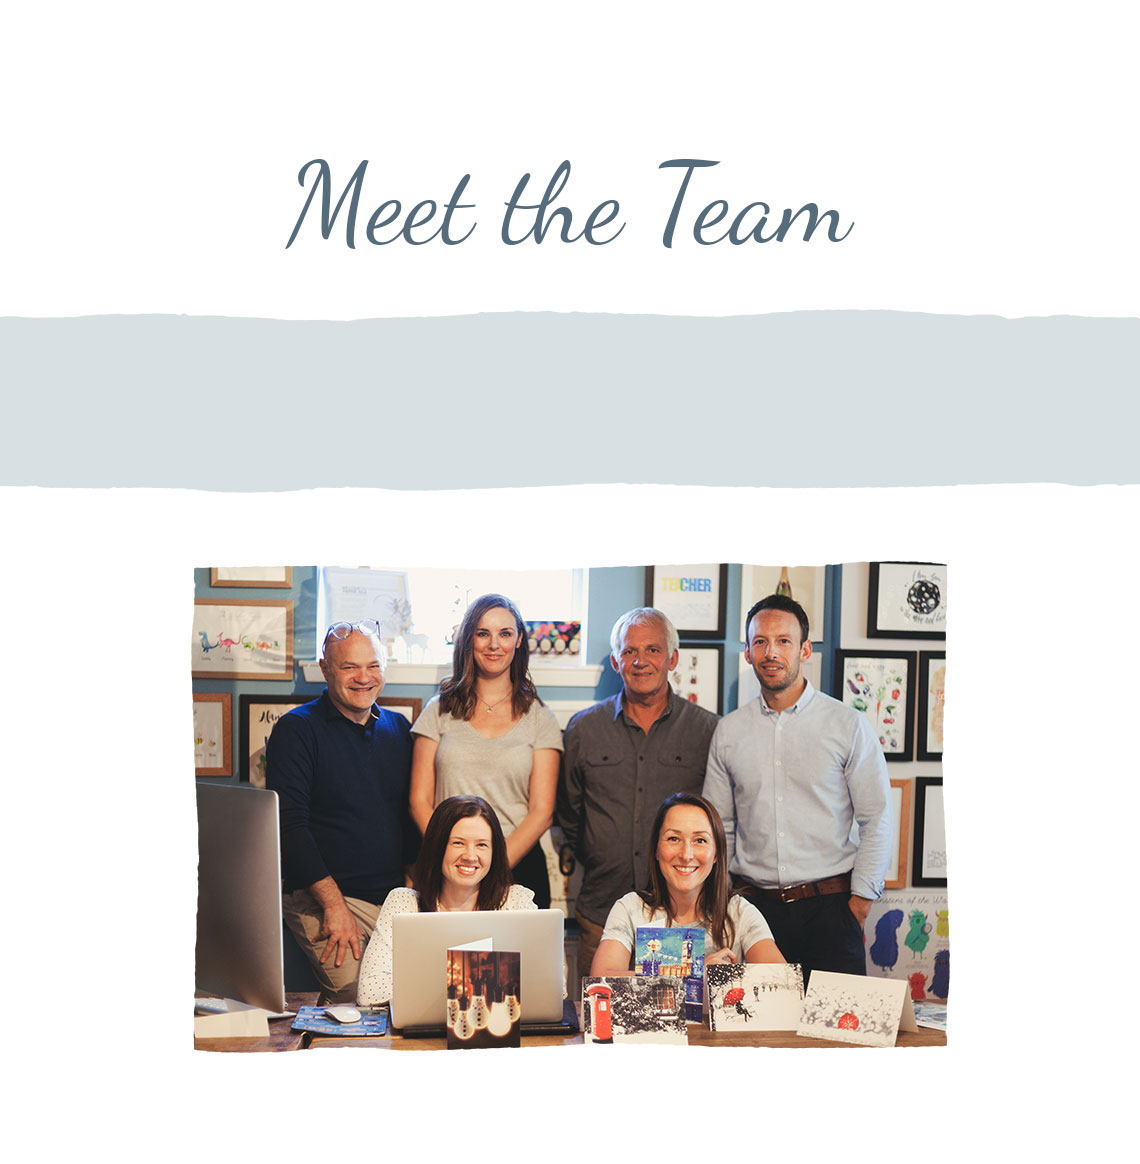 Hello! Meet the Team